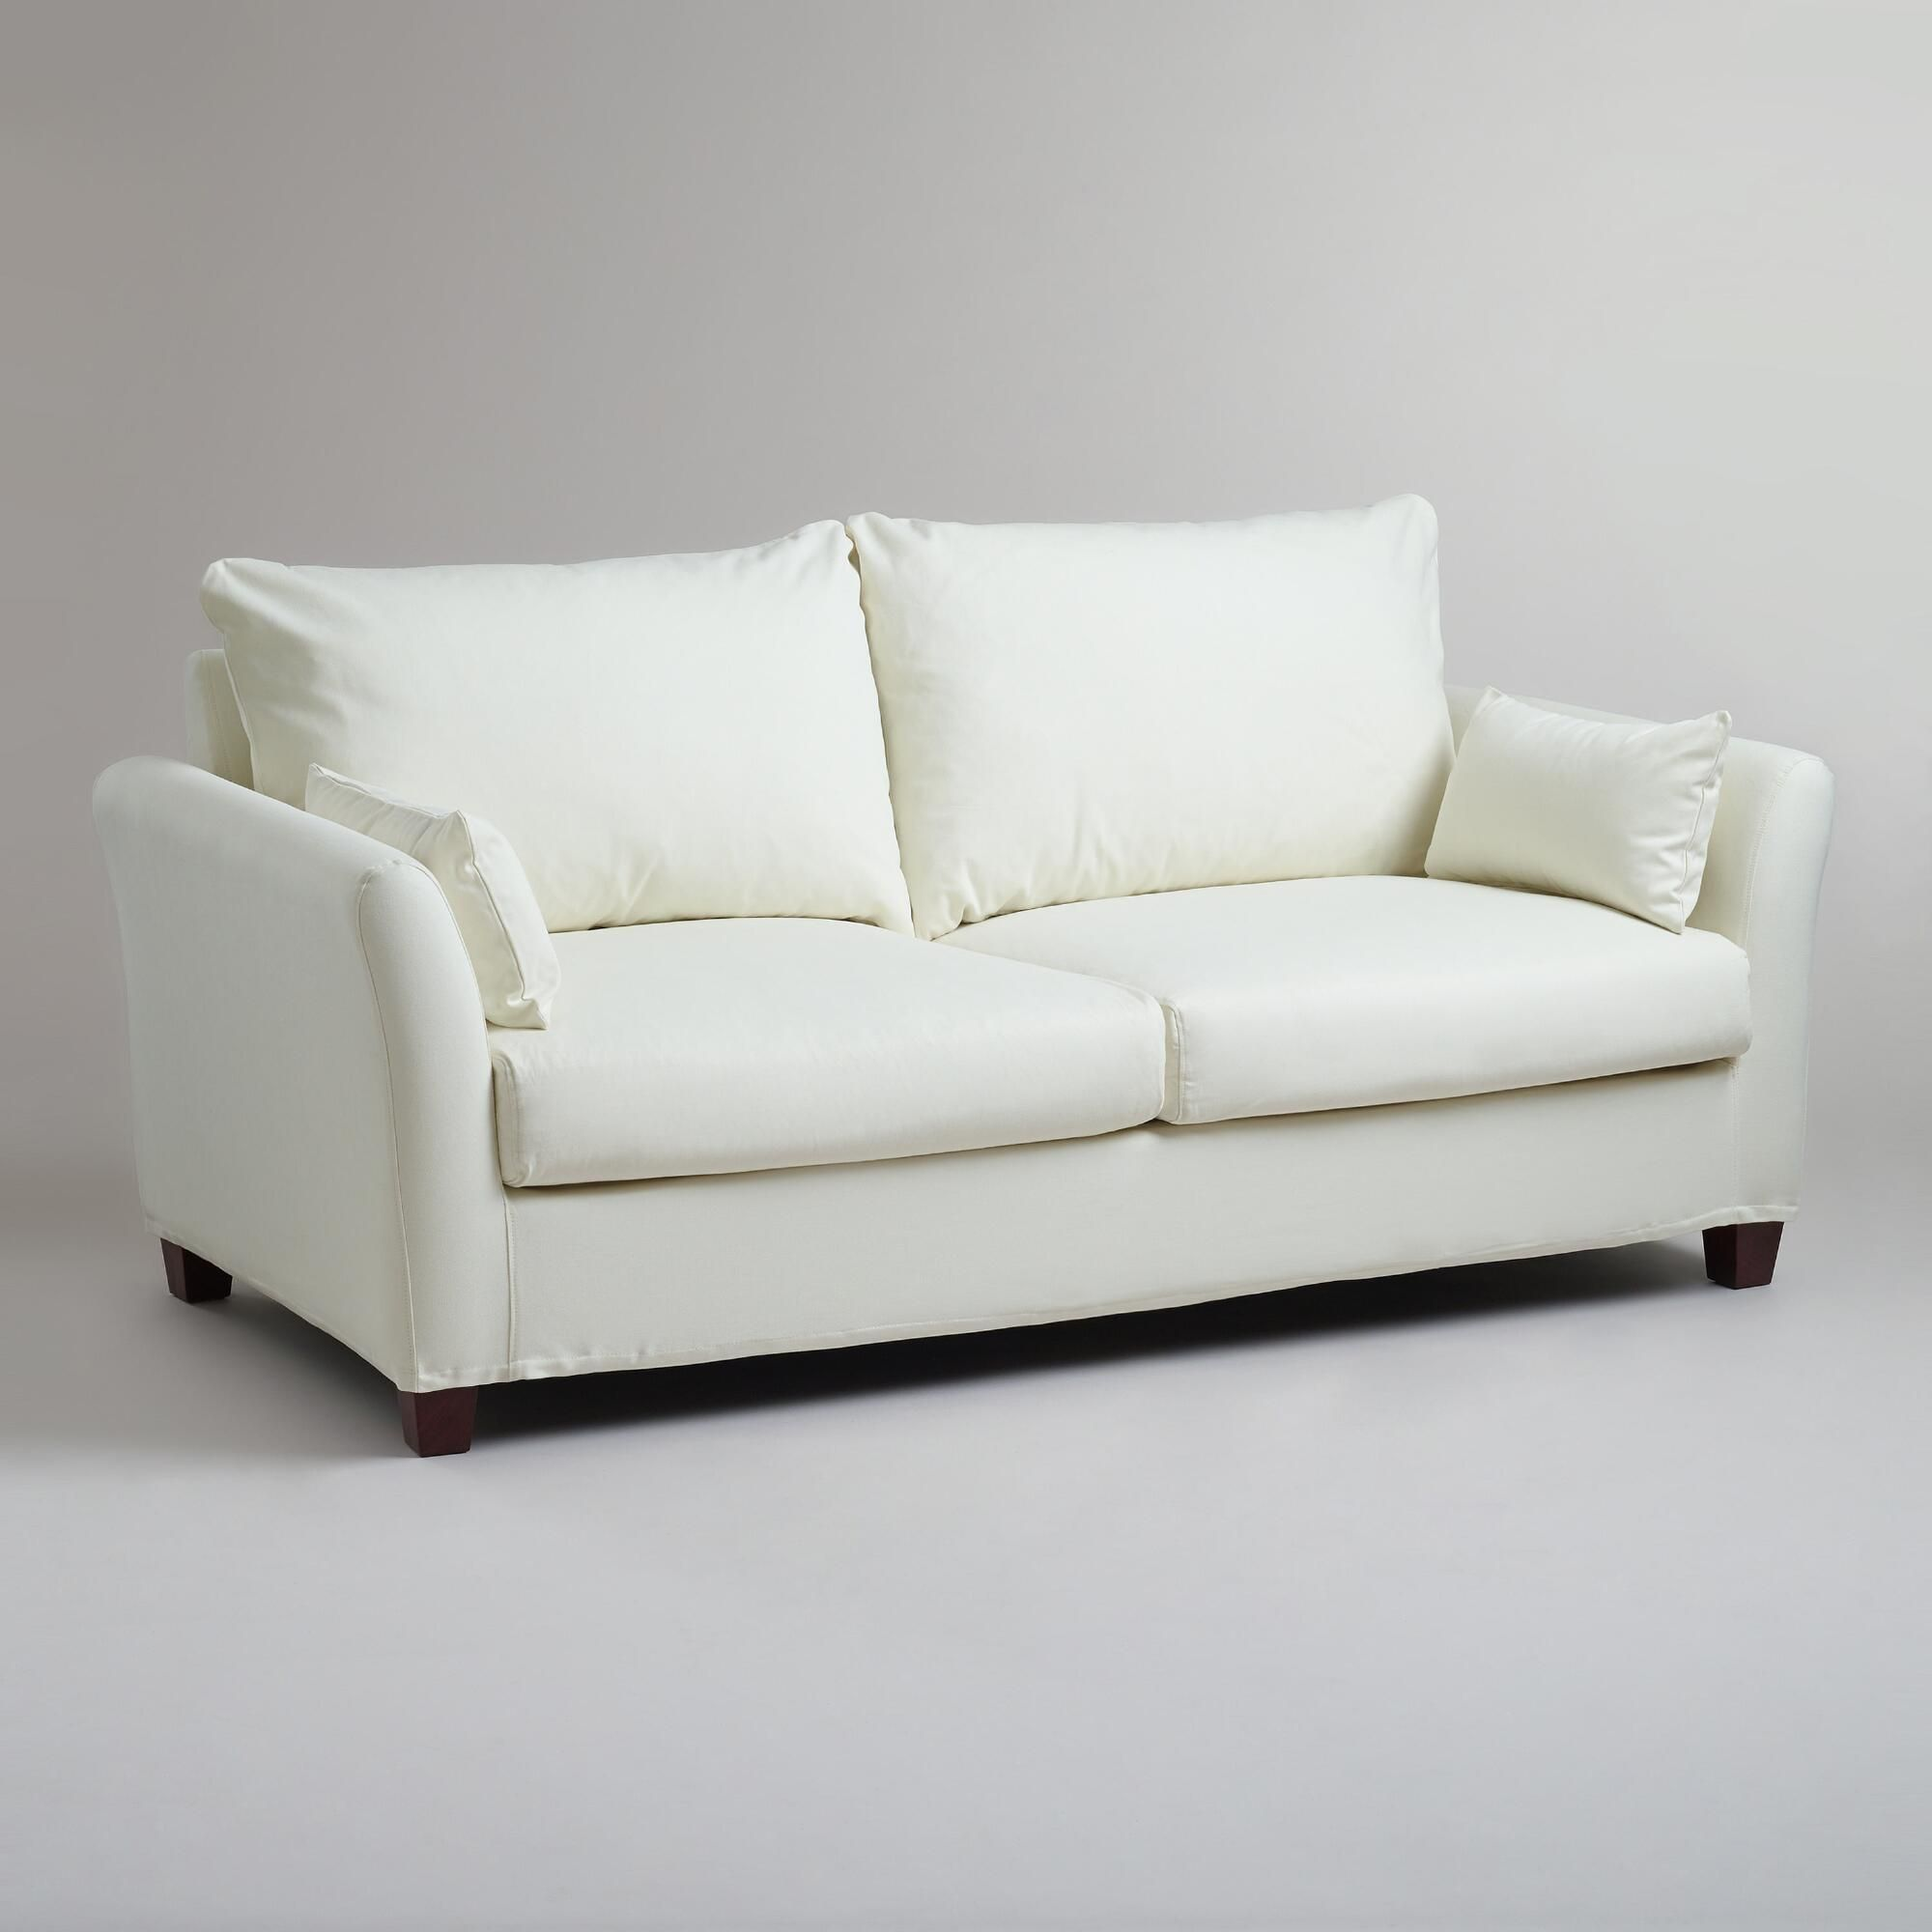 Outstanding Ivory Luxe Sofa Slipcover World Market About 450 With Gmtry Best Dining Table And Chair Ideas Images Gmtryco